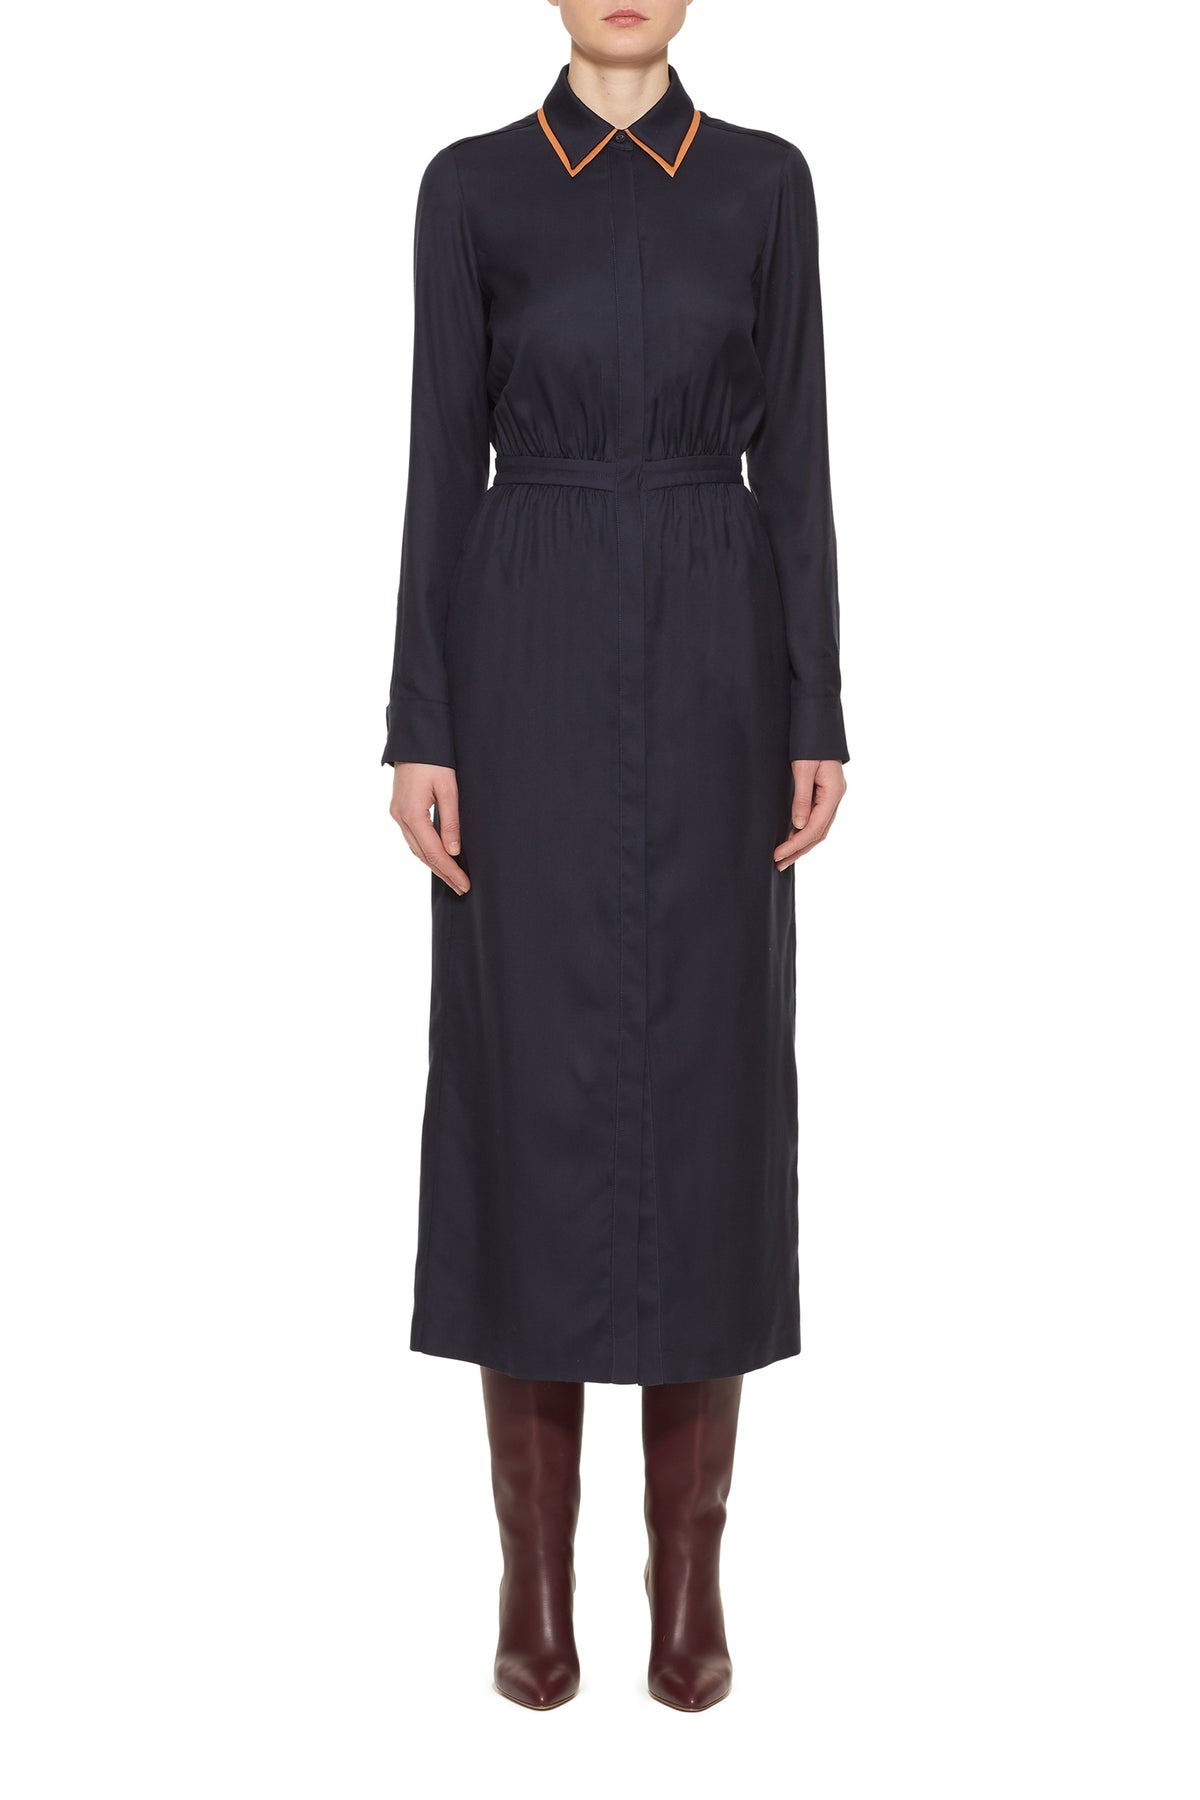 Lowell Double Collar Dress